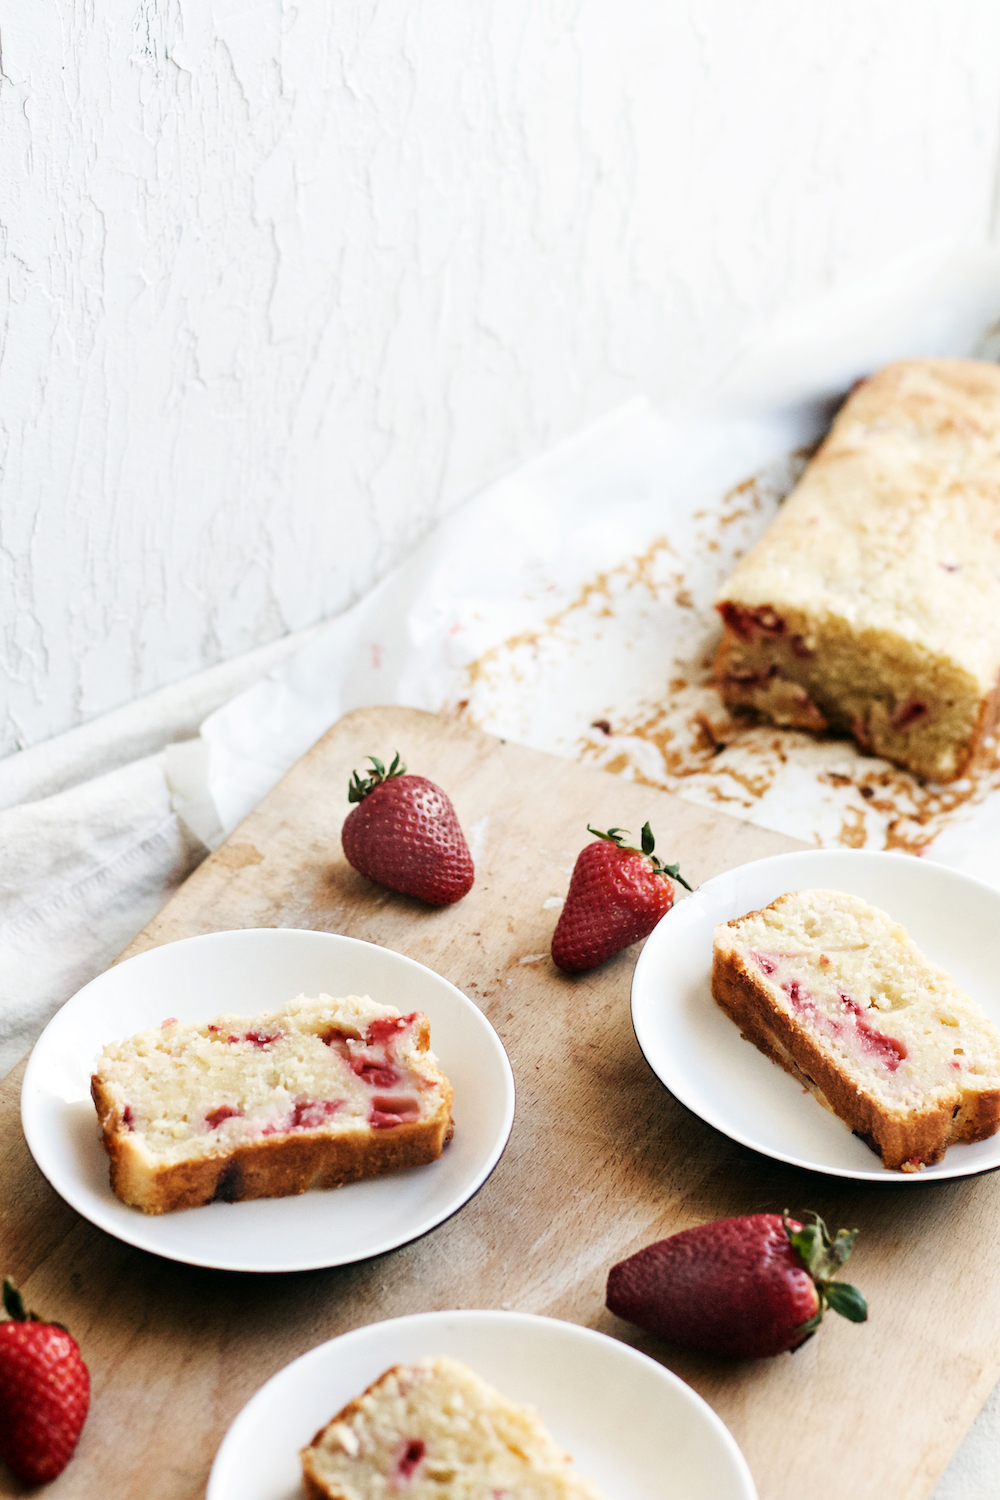 Strawberry Lemon Yogurt Cake {dairy free + vegan options} | Ruby Josephine